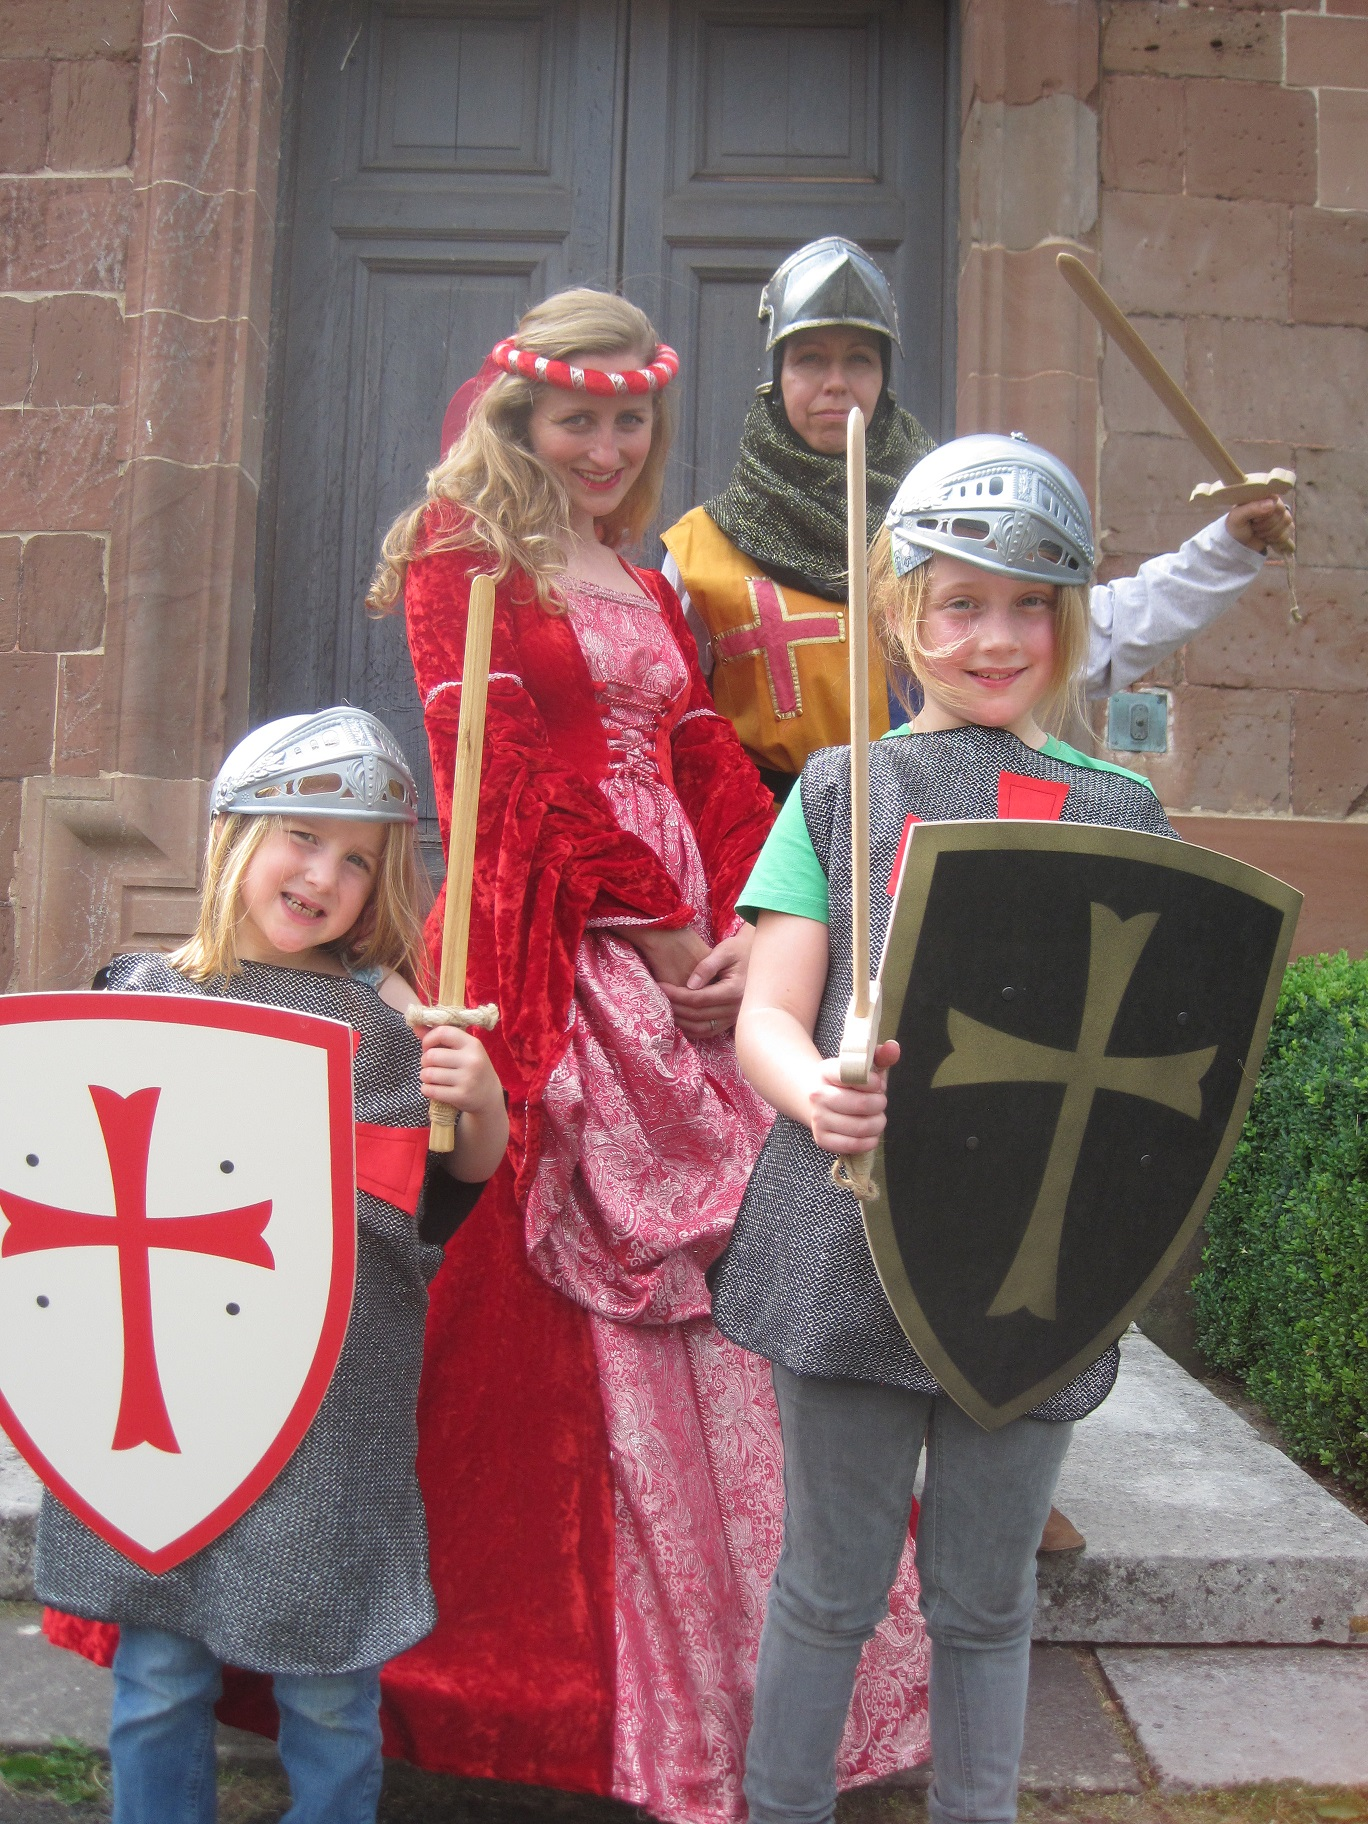 Princess Poppy and Sir John, with their 'knights in training', Florence (5) and Morgan (9) Aspinall, from Hartlebury.